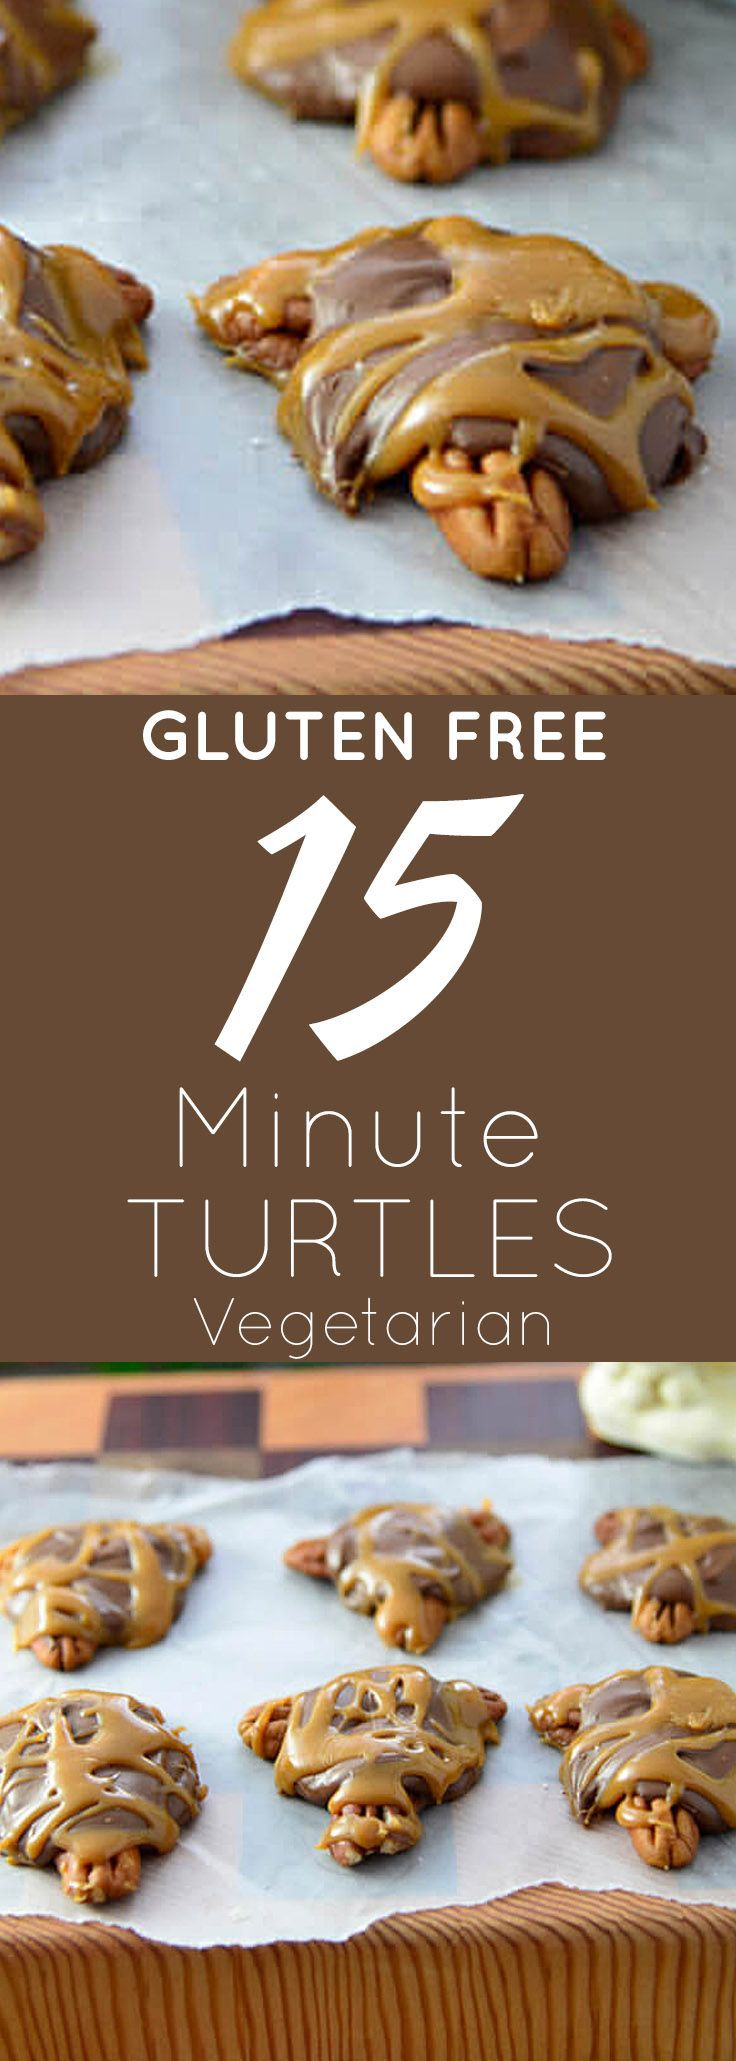 Gluten Free 15-Minute Turtle Recipe | I can pre make these, and keep them in the freezer till thanksgiving